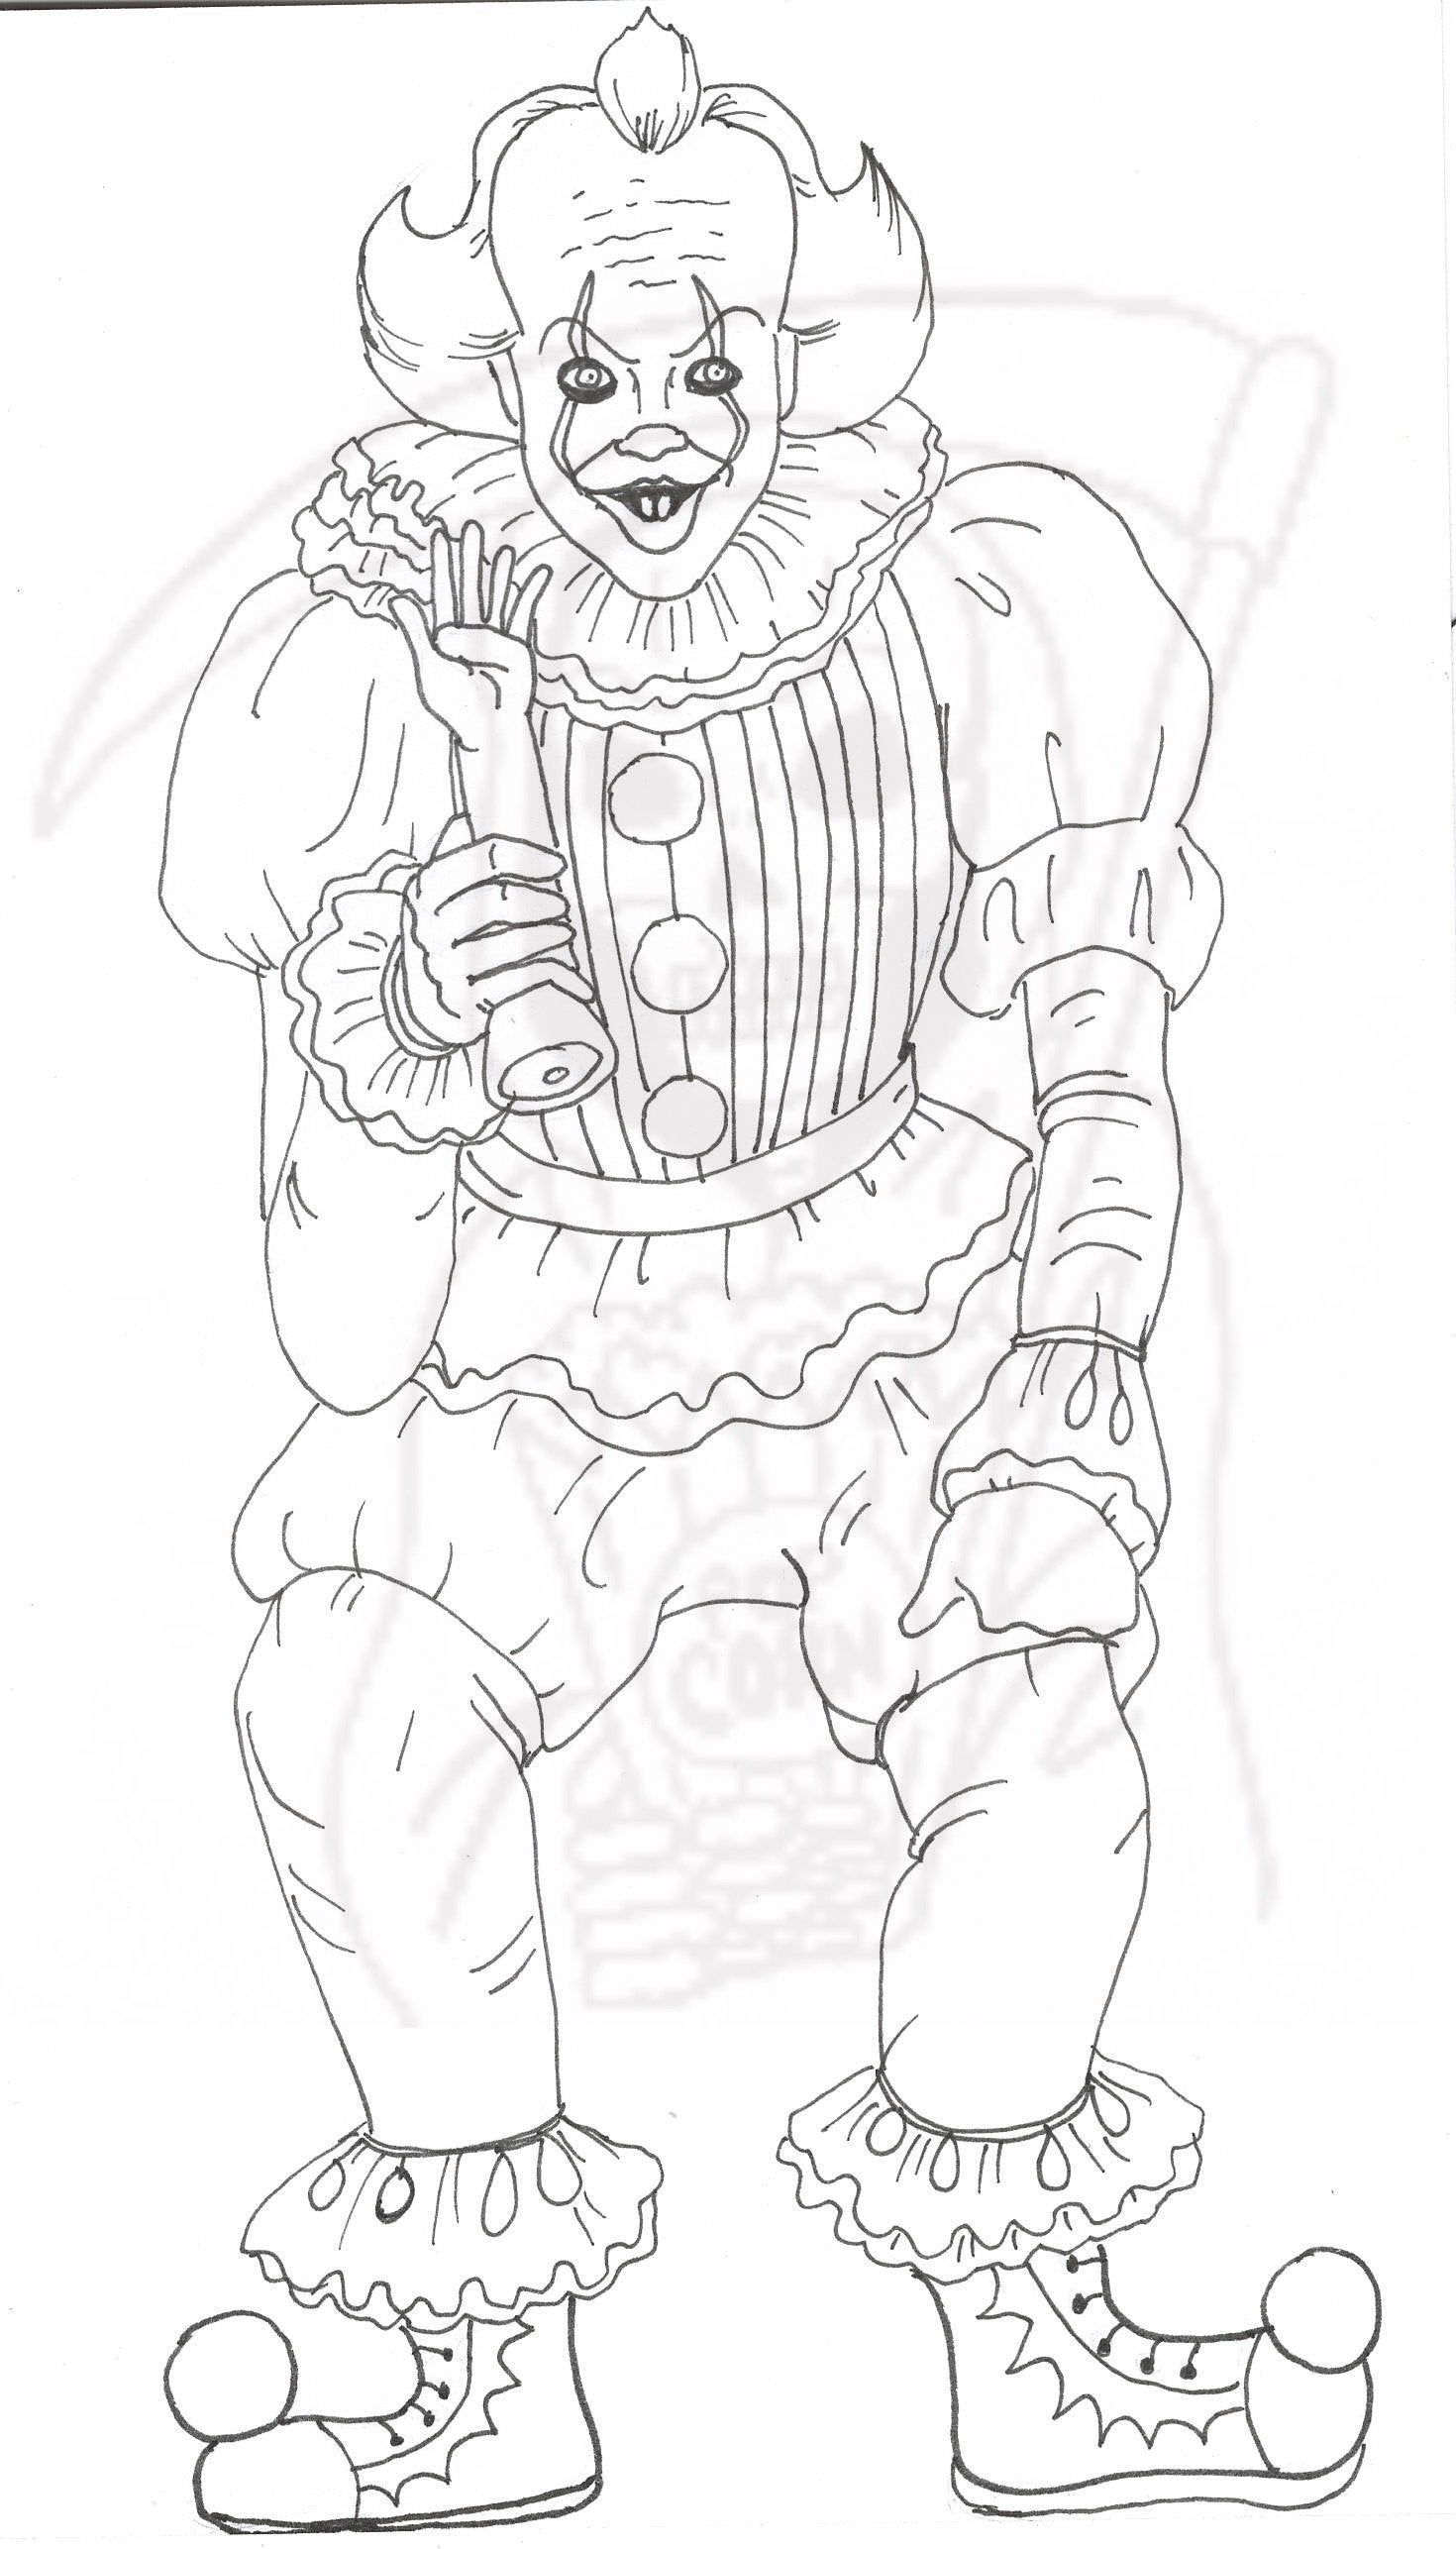 Pennywise Coloring Page It Creepy Clown Etsy In 2020 Avengers Coloring Pages Monster Coloring Pages Avengers Coloring